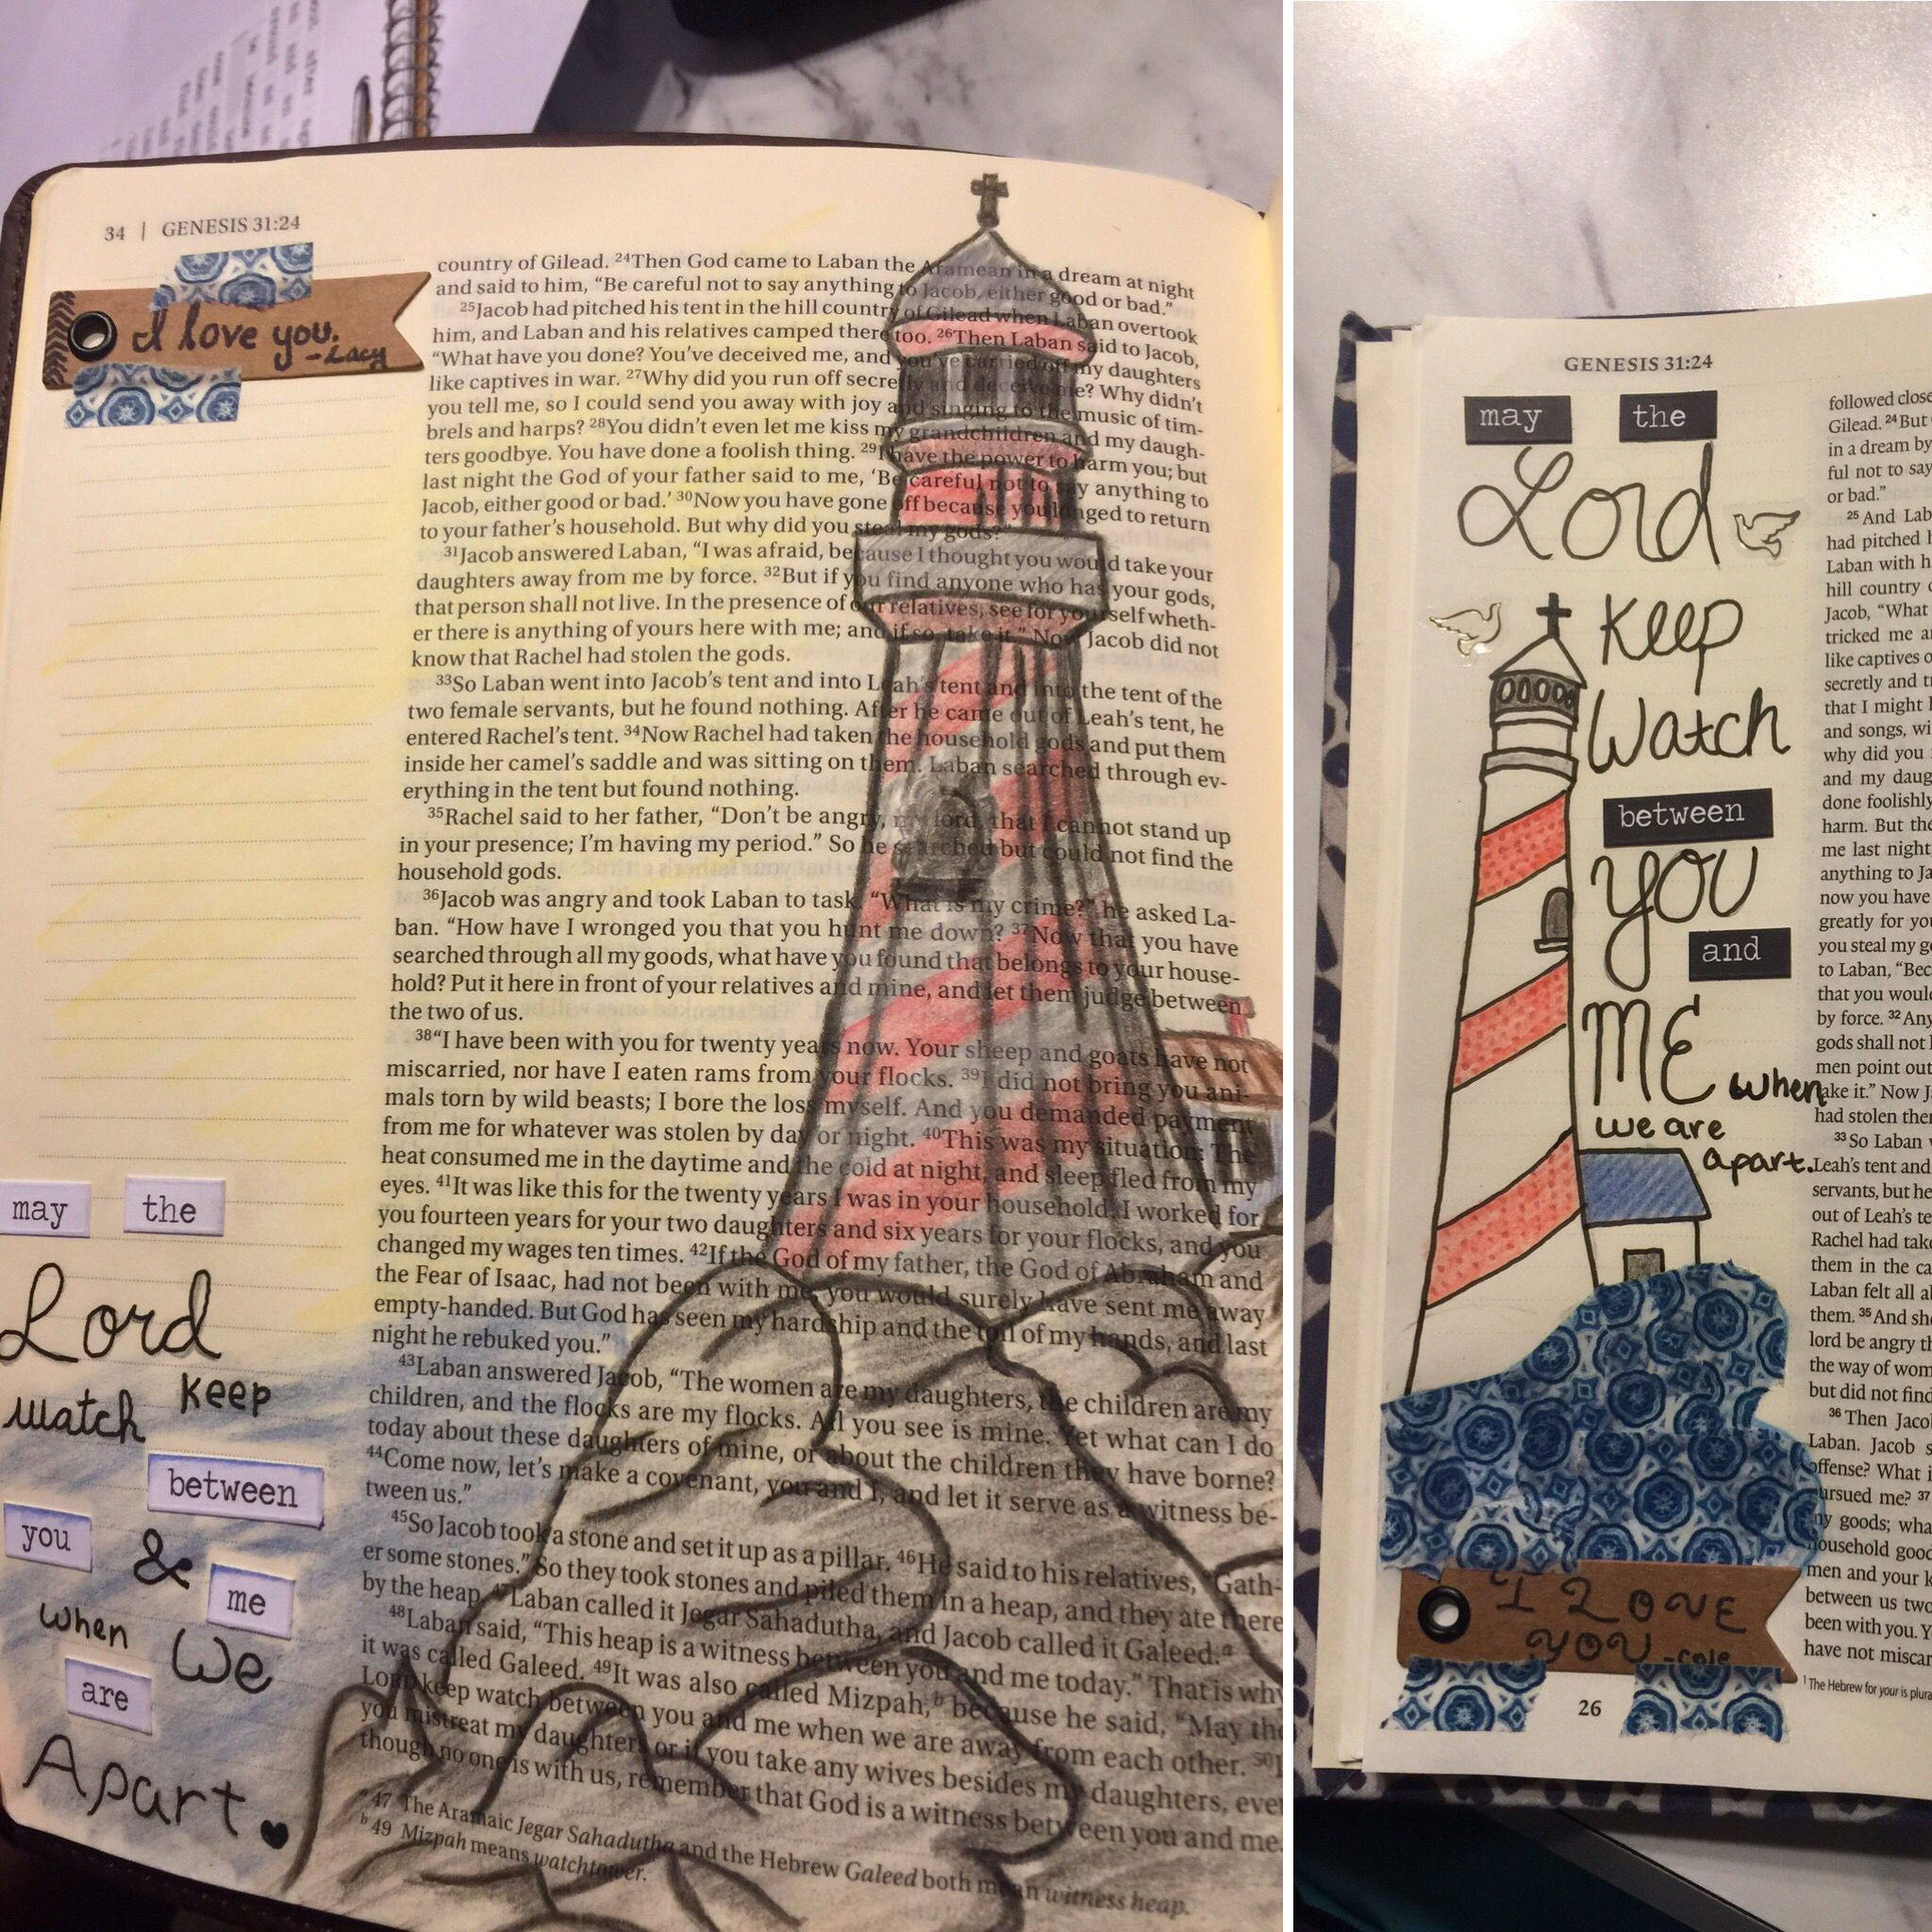 Simple Colored Pencil Lighthouse Drawing Of Genesis 31 49 Great